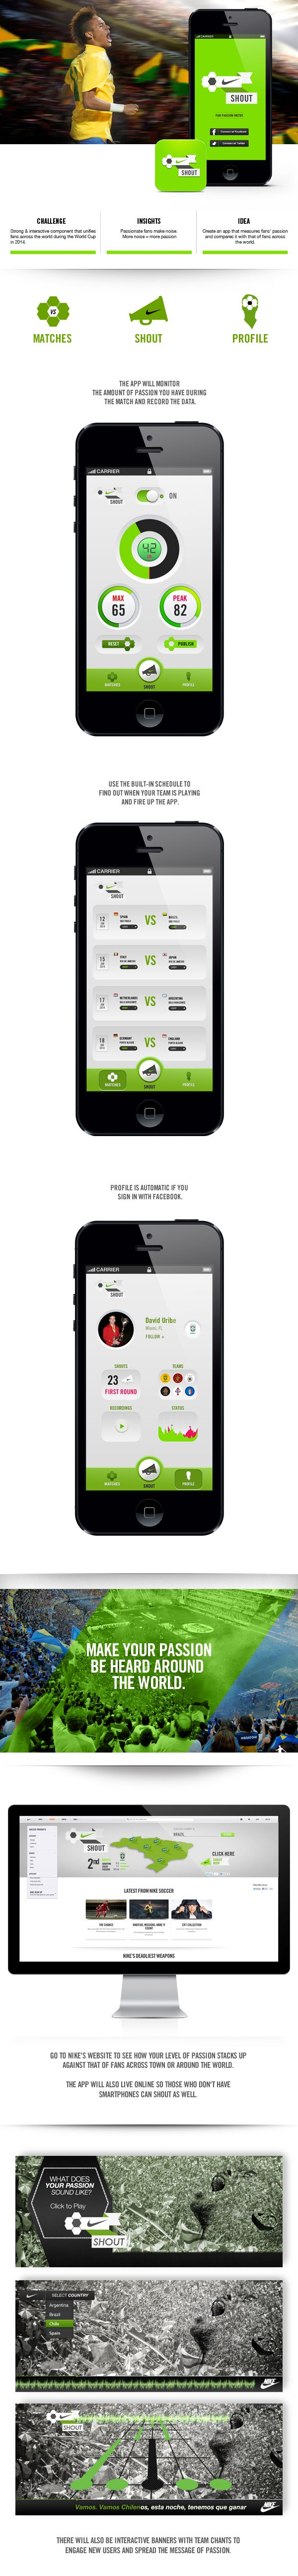 NIKE SHOUT by Andres Schiling, via Behance *** Mobile app that measures fans' passion and compares it with that of fans across the world.